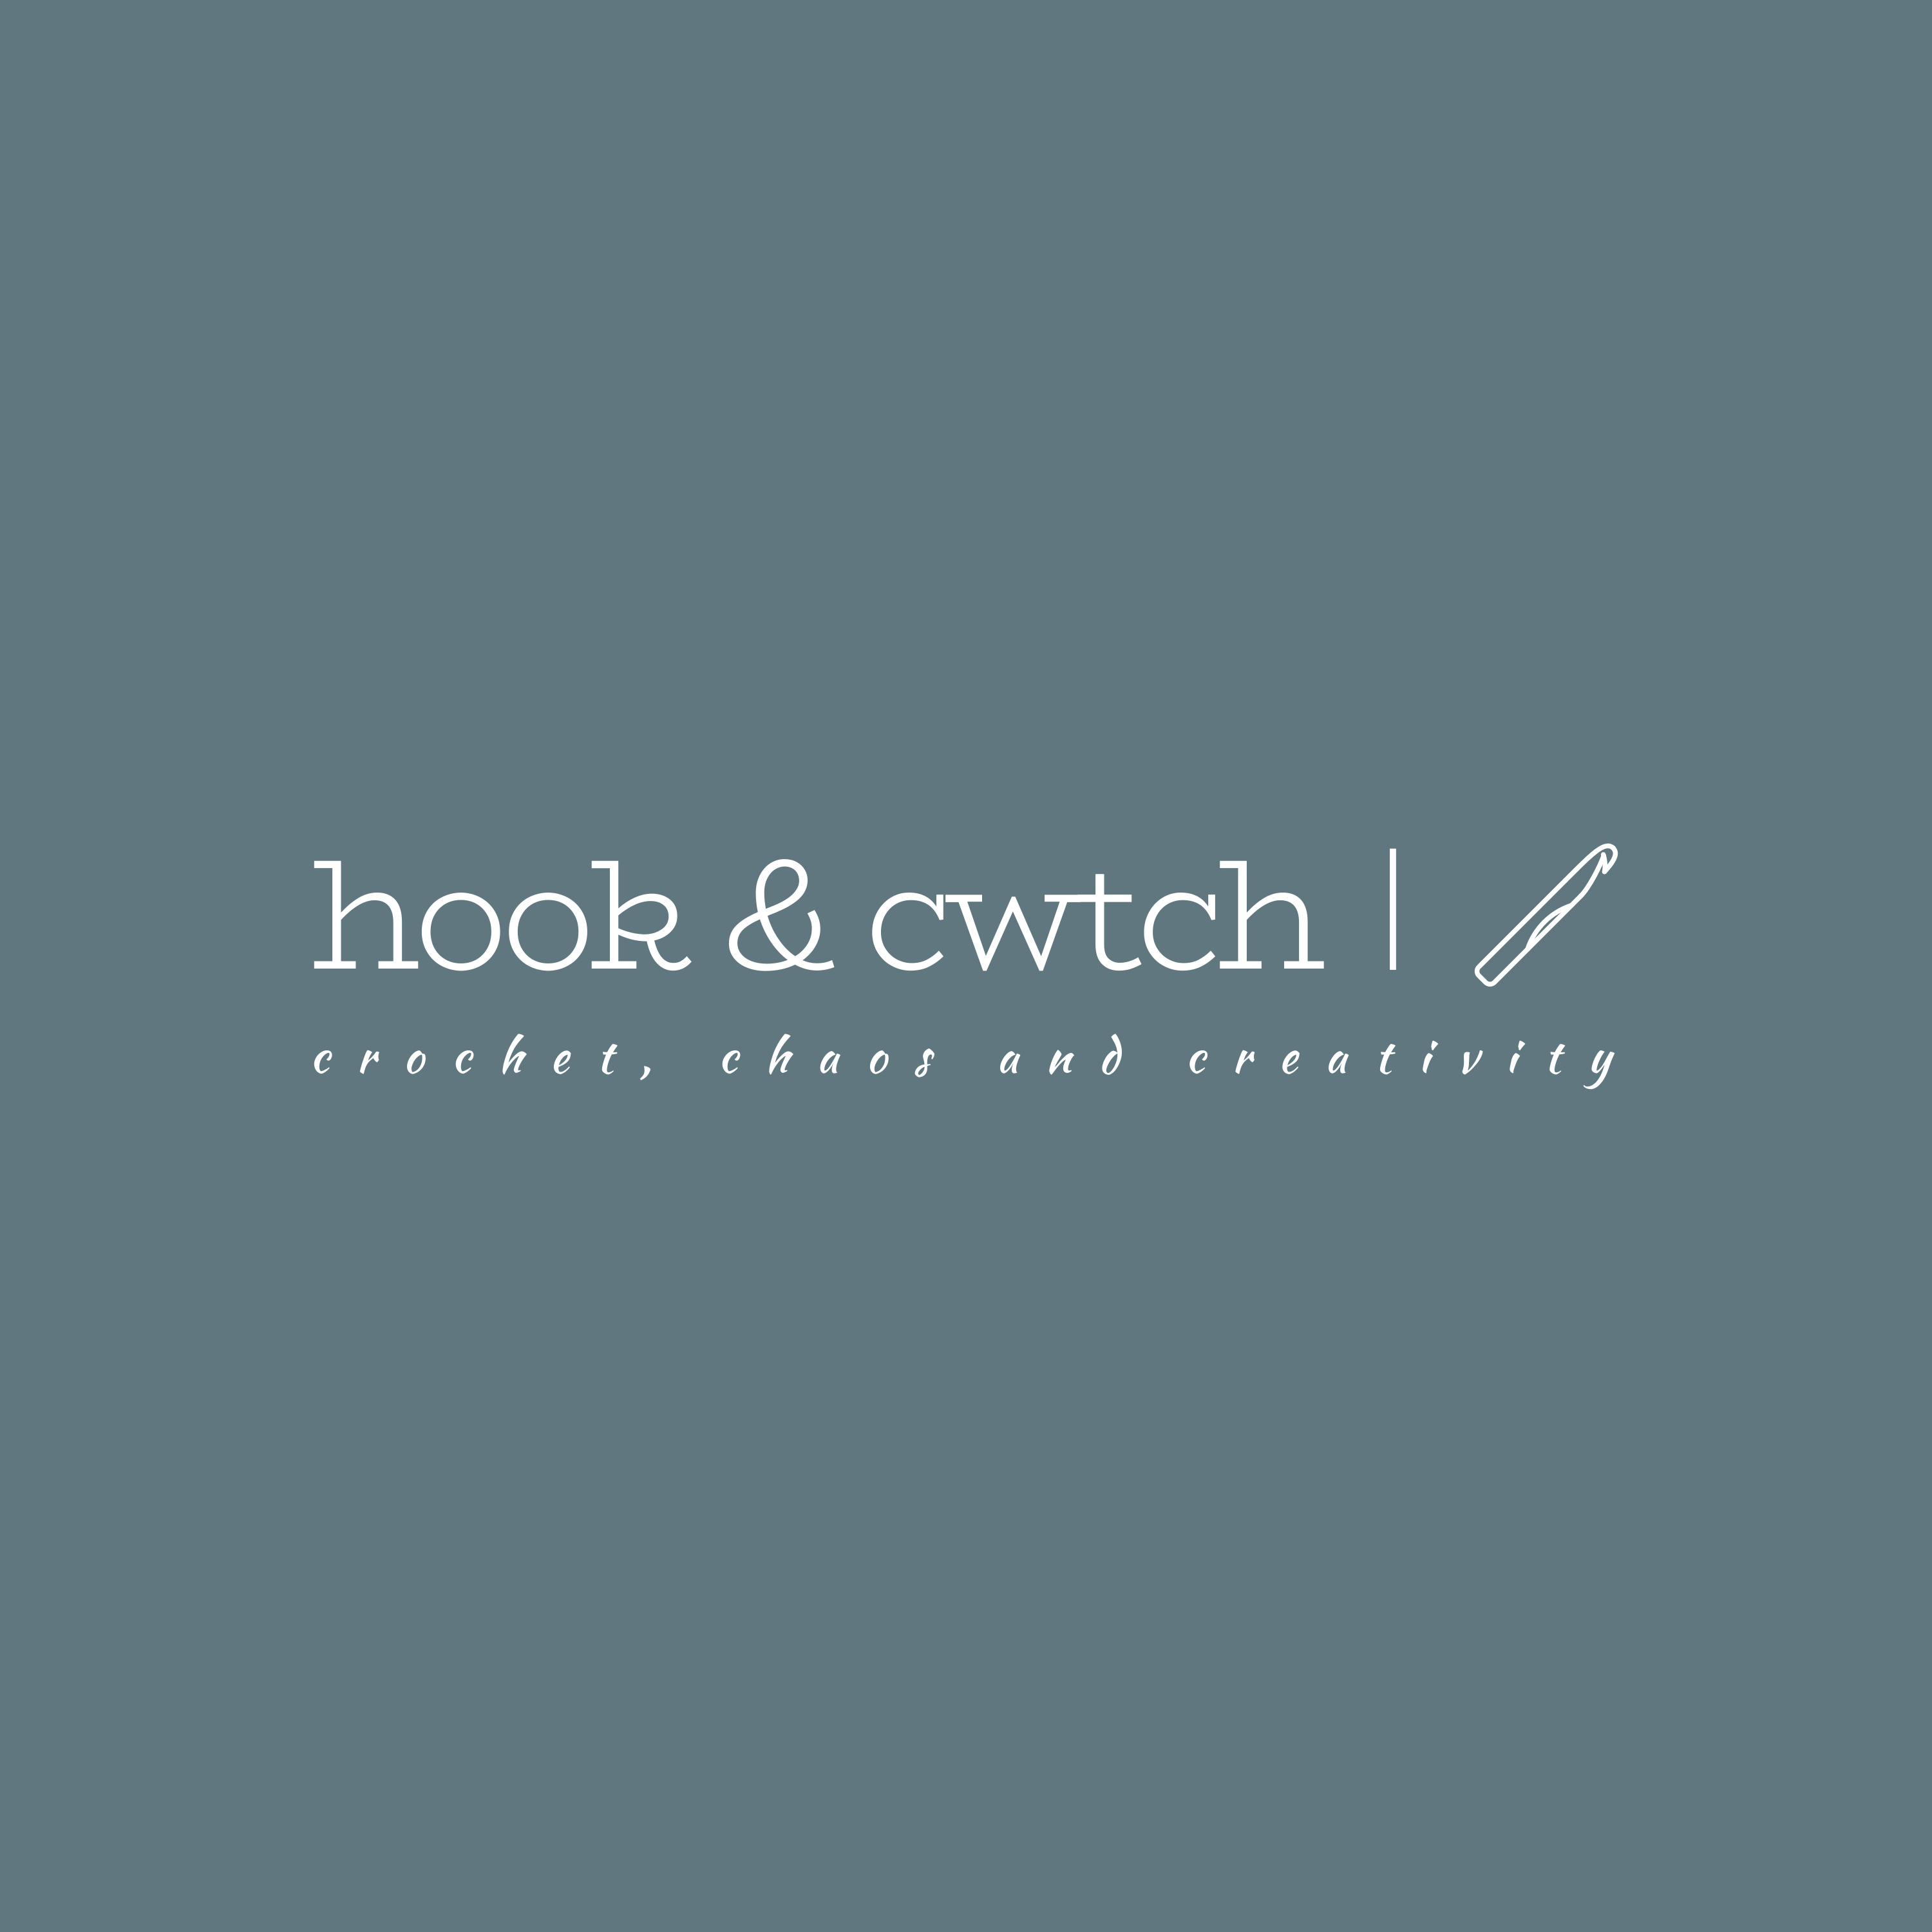 hook and cwtch